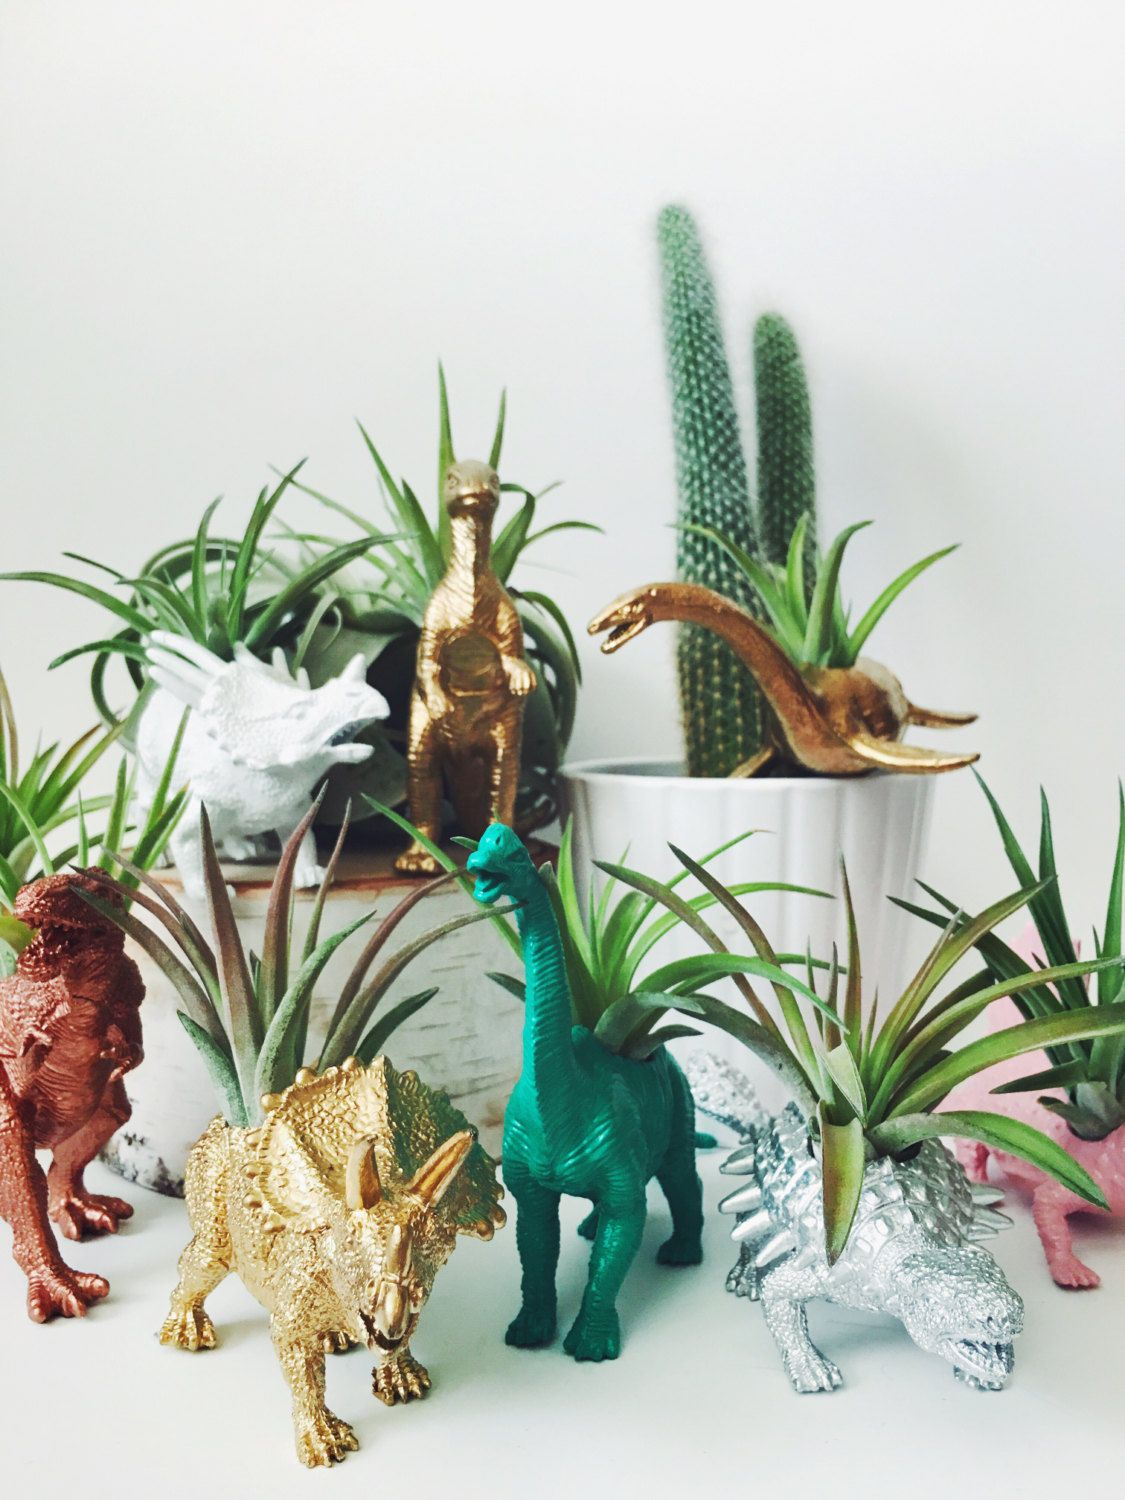 Customize Your Own Small Dinosaur Planter with Air Plant ...